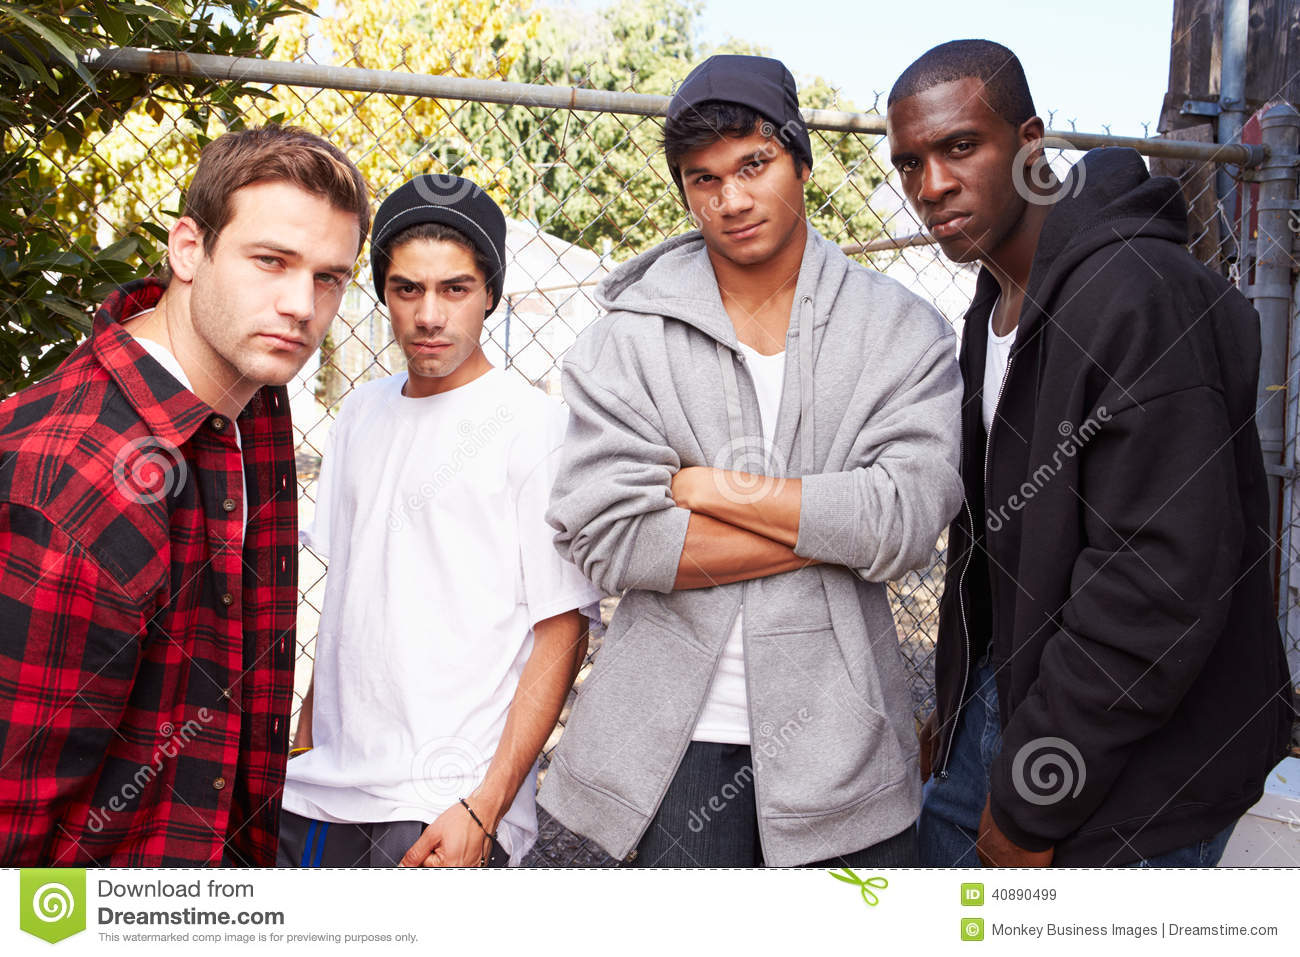 Group Of Young Men In Urban Setting Standing By Fe